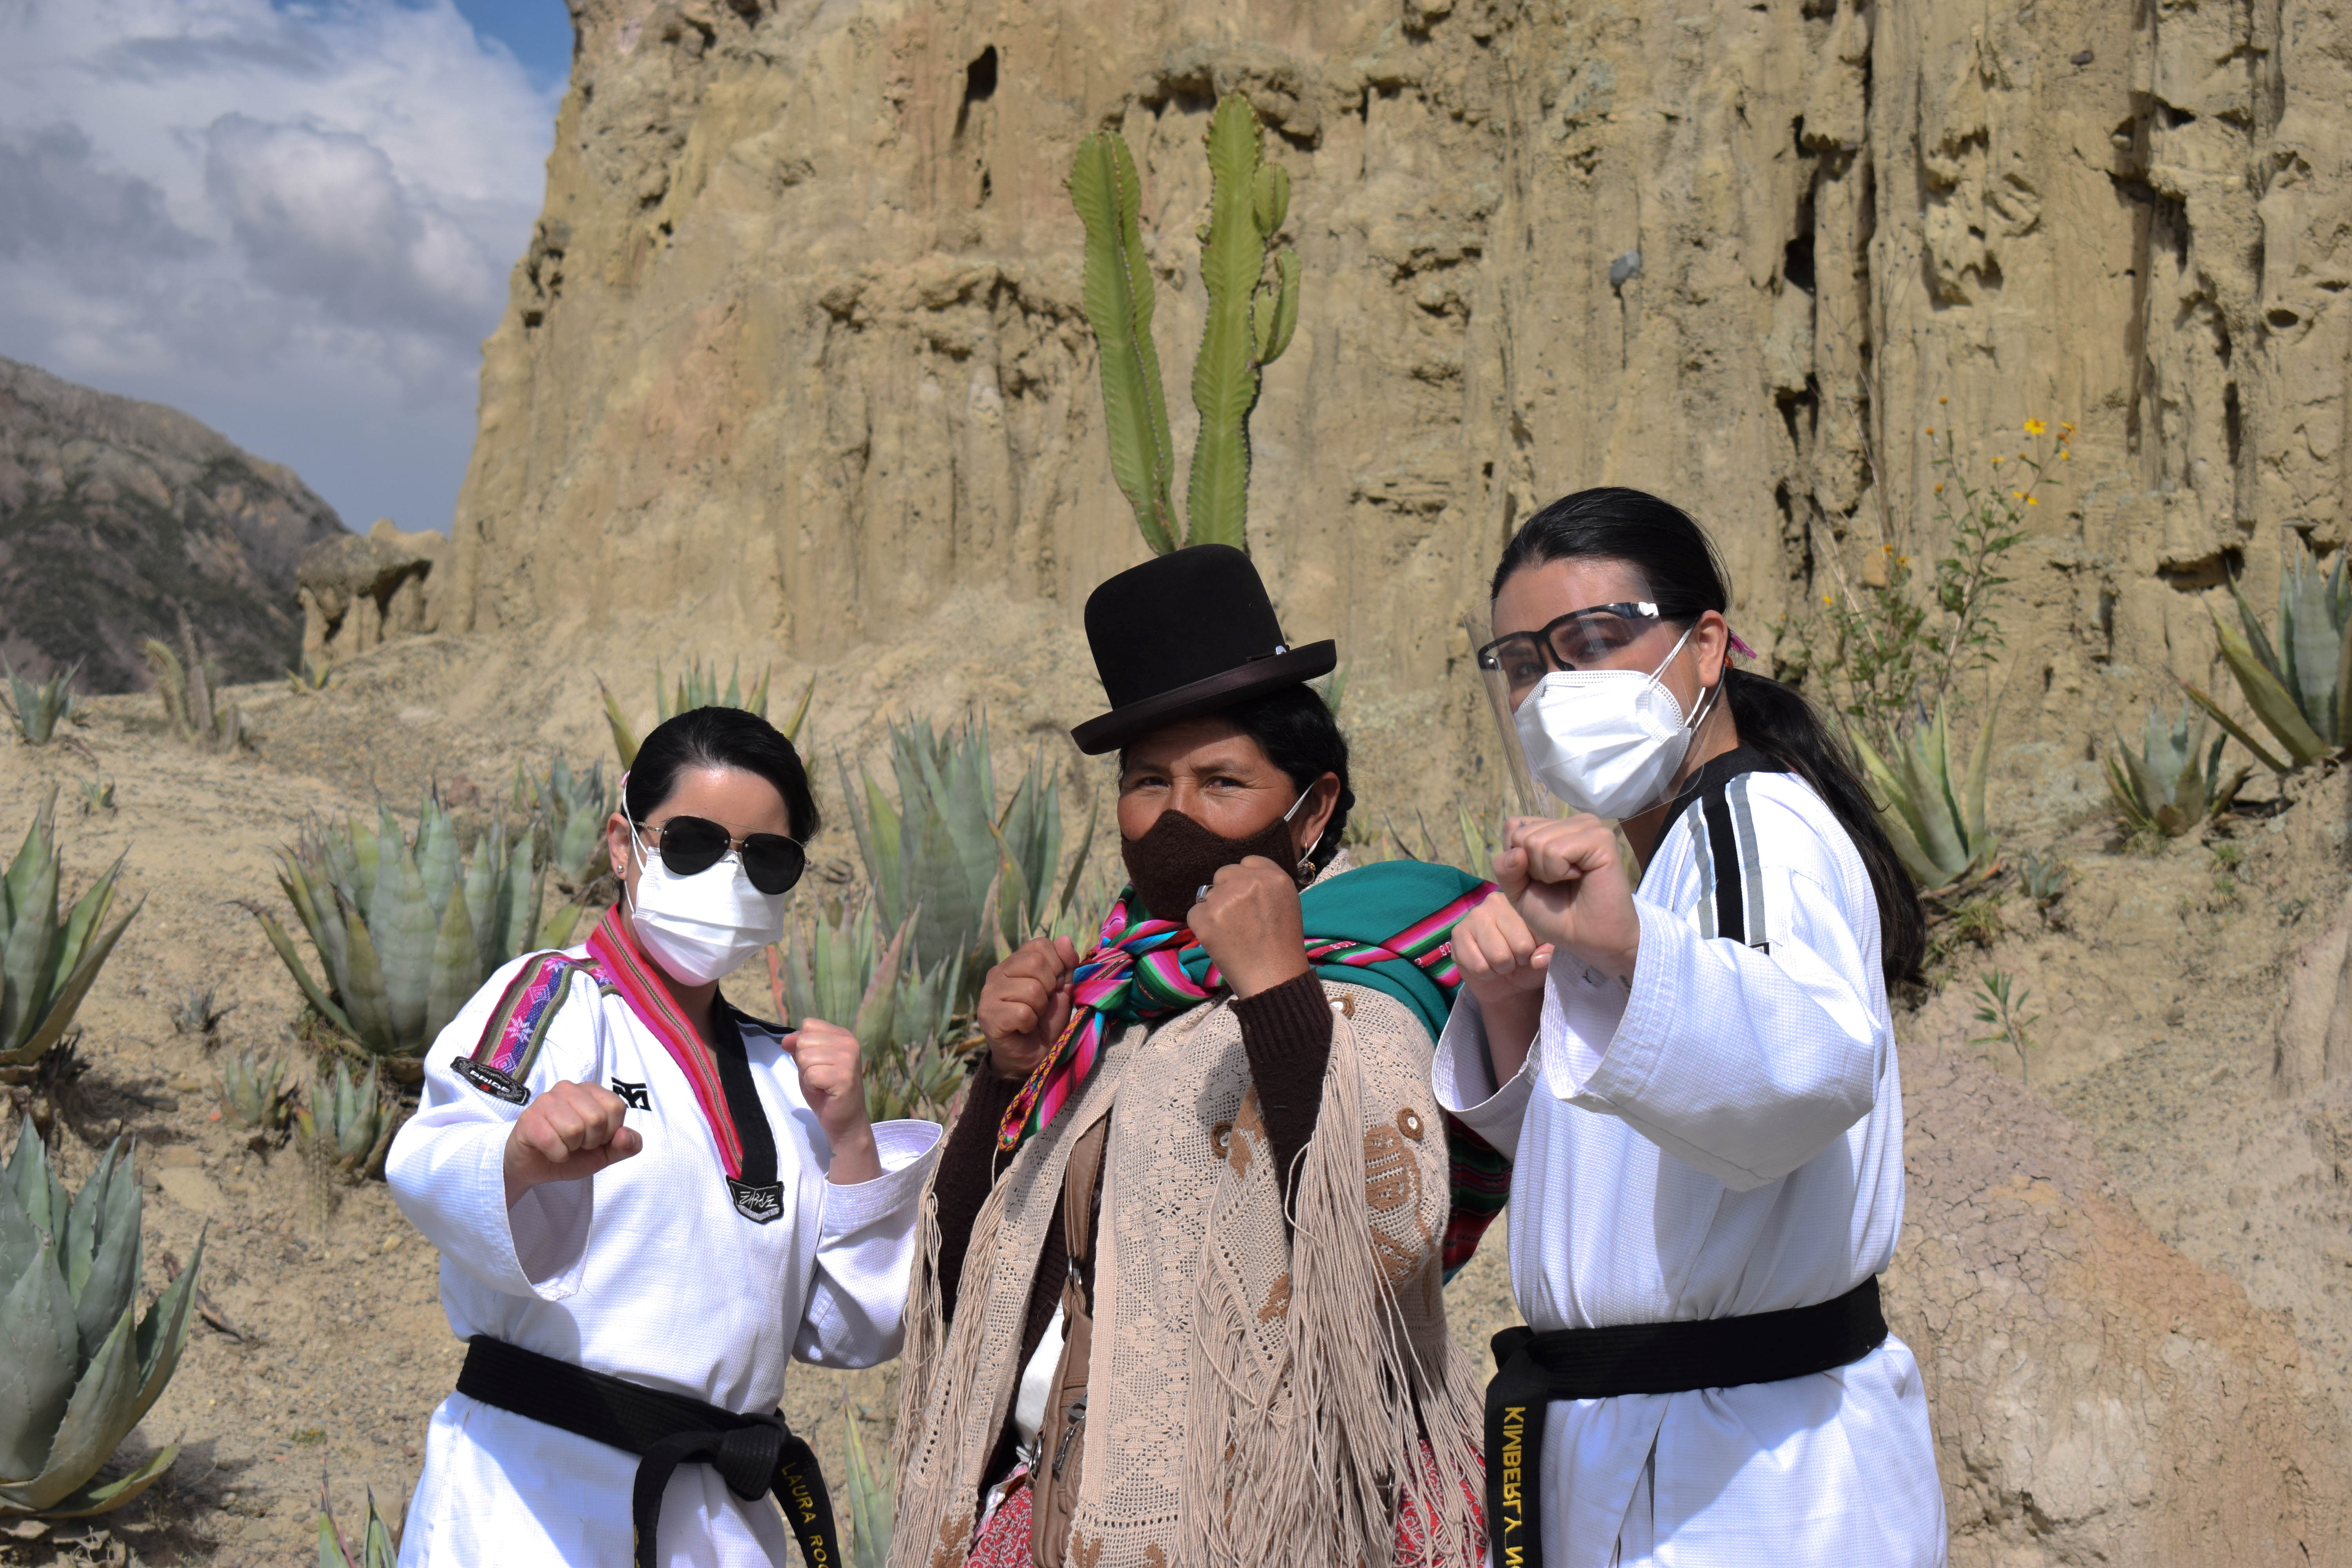 A Bolivian Aymara woman poses for a photograph with Sports Psychologist Laura Roca (L) and Personal Development and Women's coach Kimberly Nosa (R) of the Warmi Power social project during a taekwondo class to learn self-defence, on the outskirts of La Paz, Bolivia April 23, 2021. Picture taken April 23, 2021. Laura Roca/Warmi Power/Handout via REUTERS